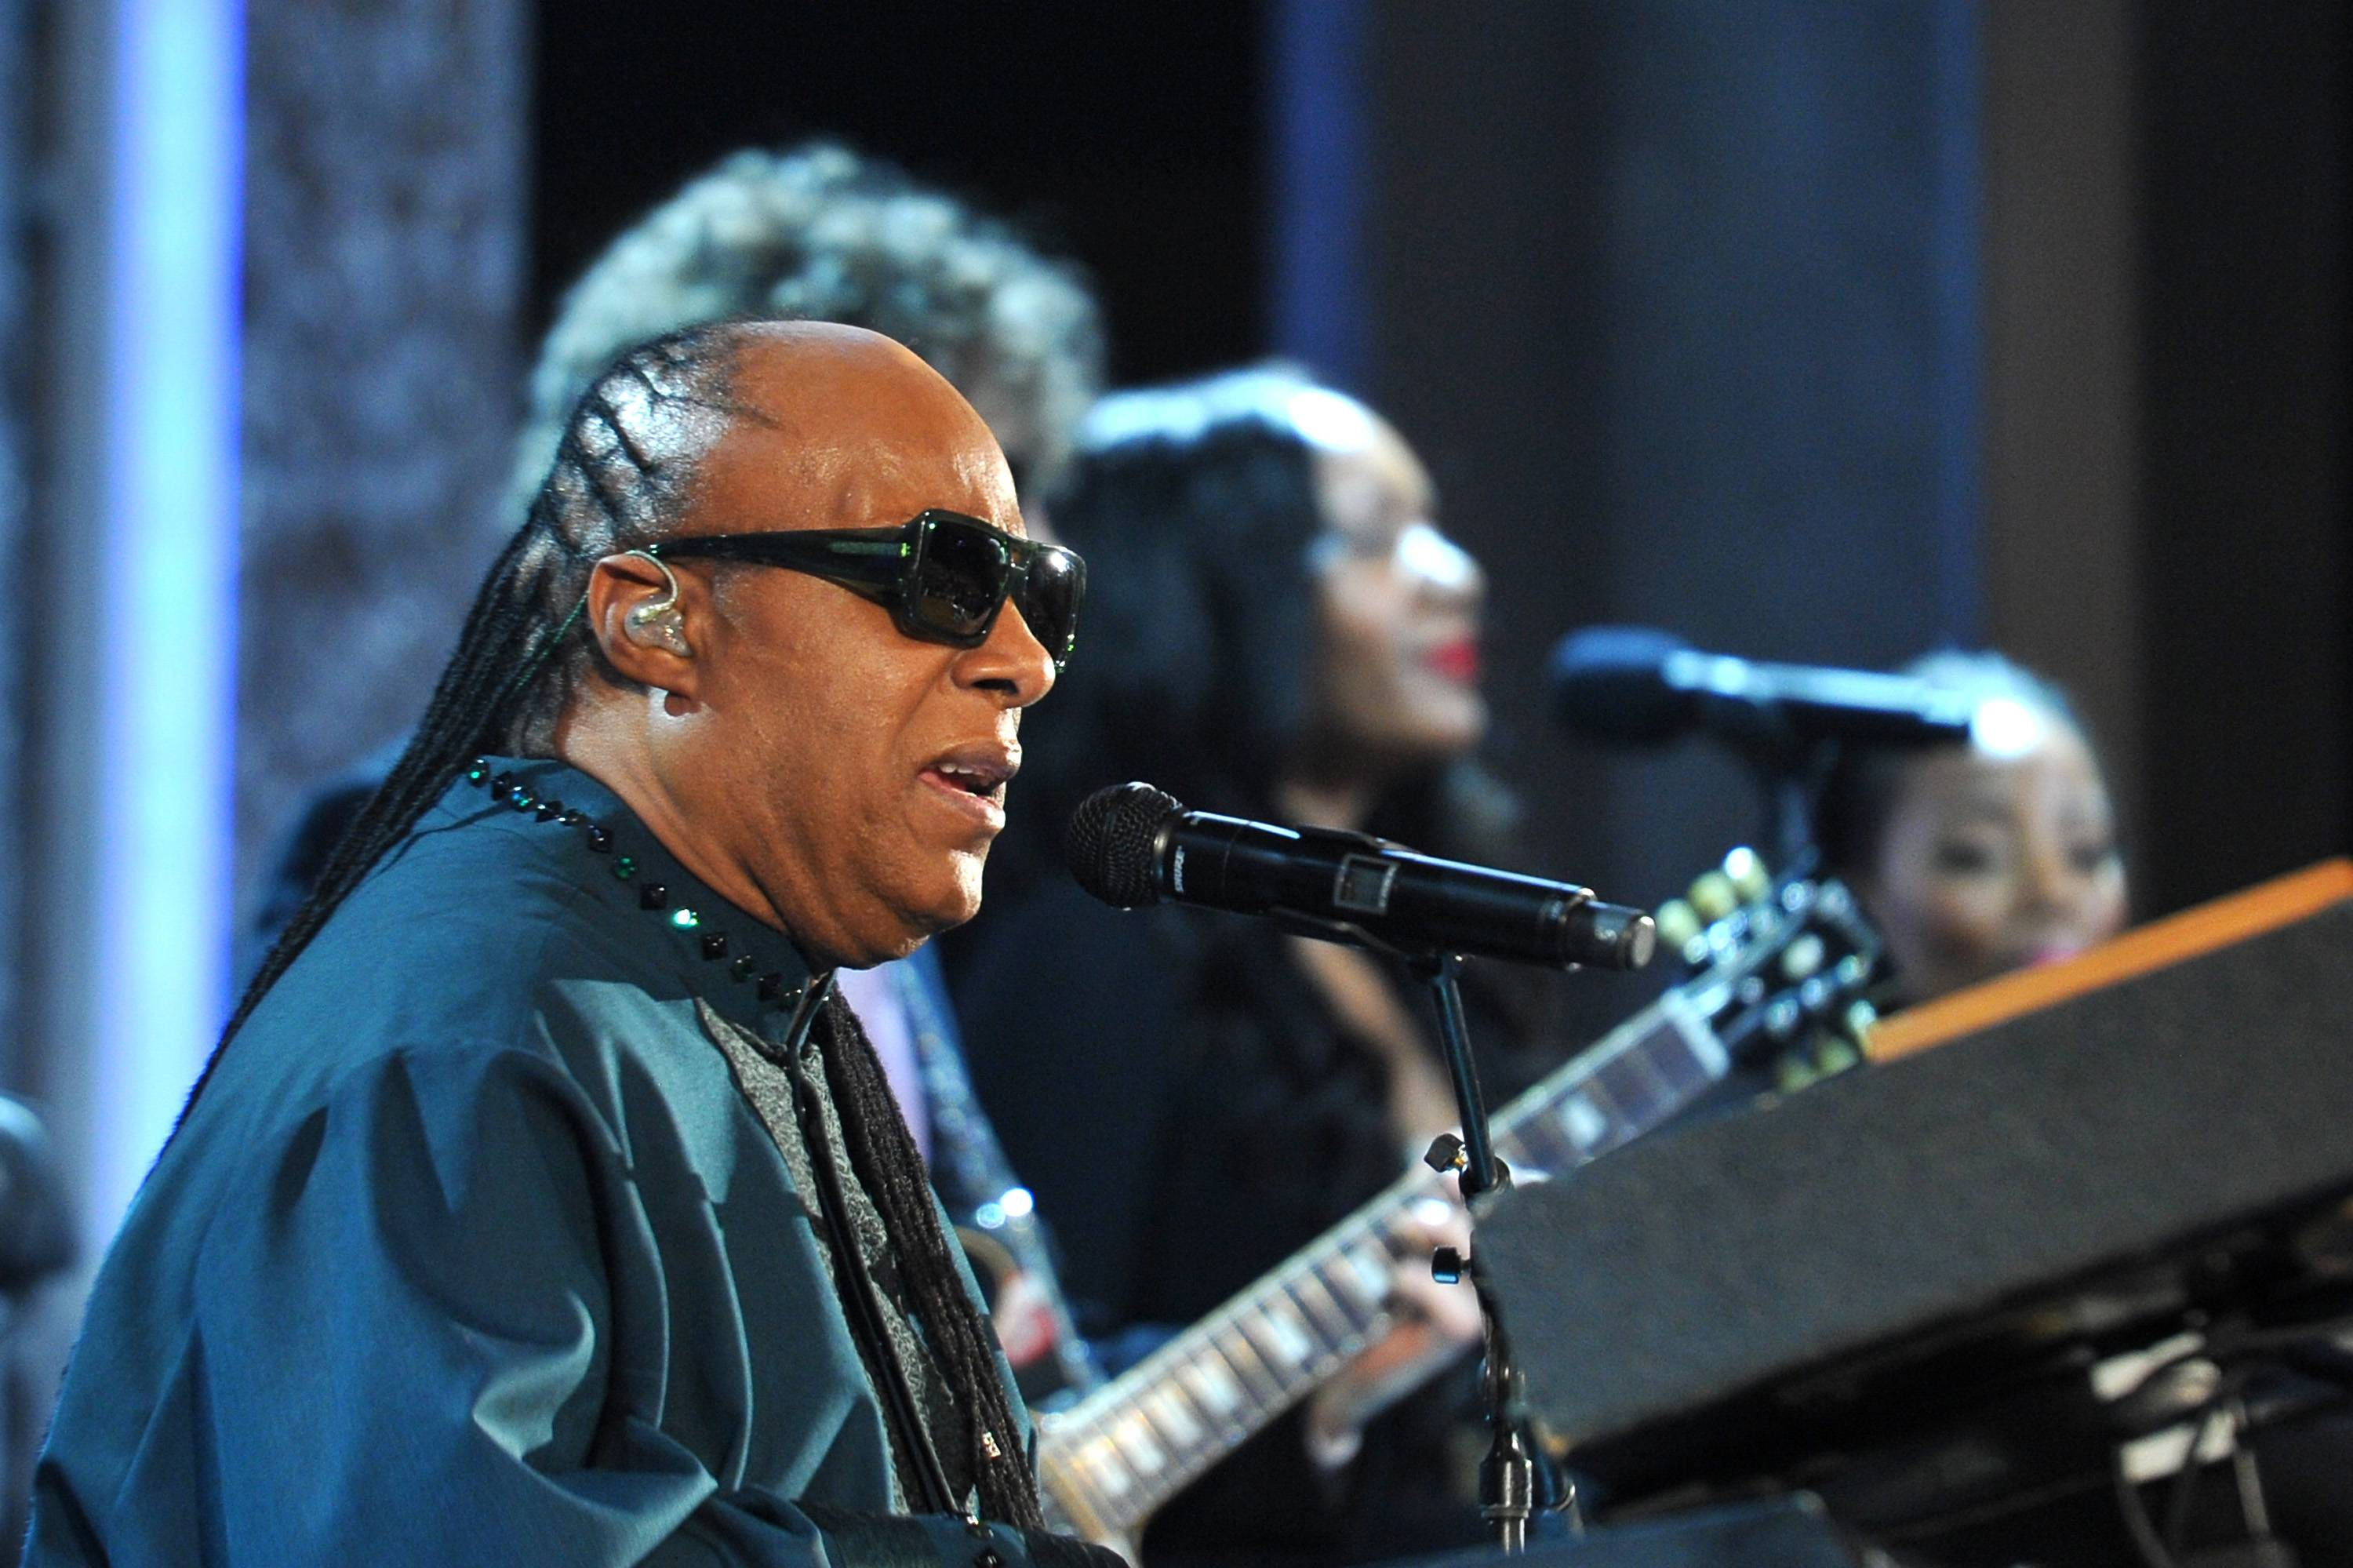 Stevie Wonder is Expecting Triplets - According to reports, Stevie Wonder is expecting triplets with his twenty-something girlfriend. We guess it's never too late to get it in.